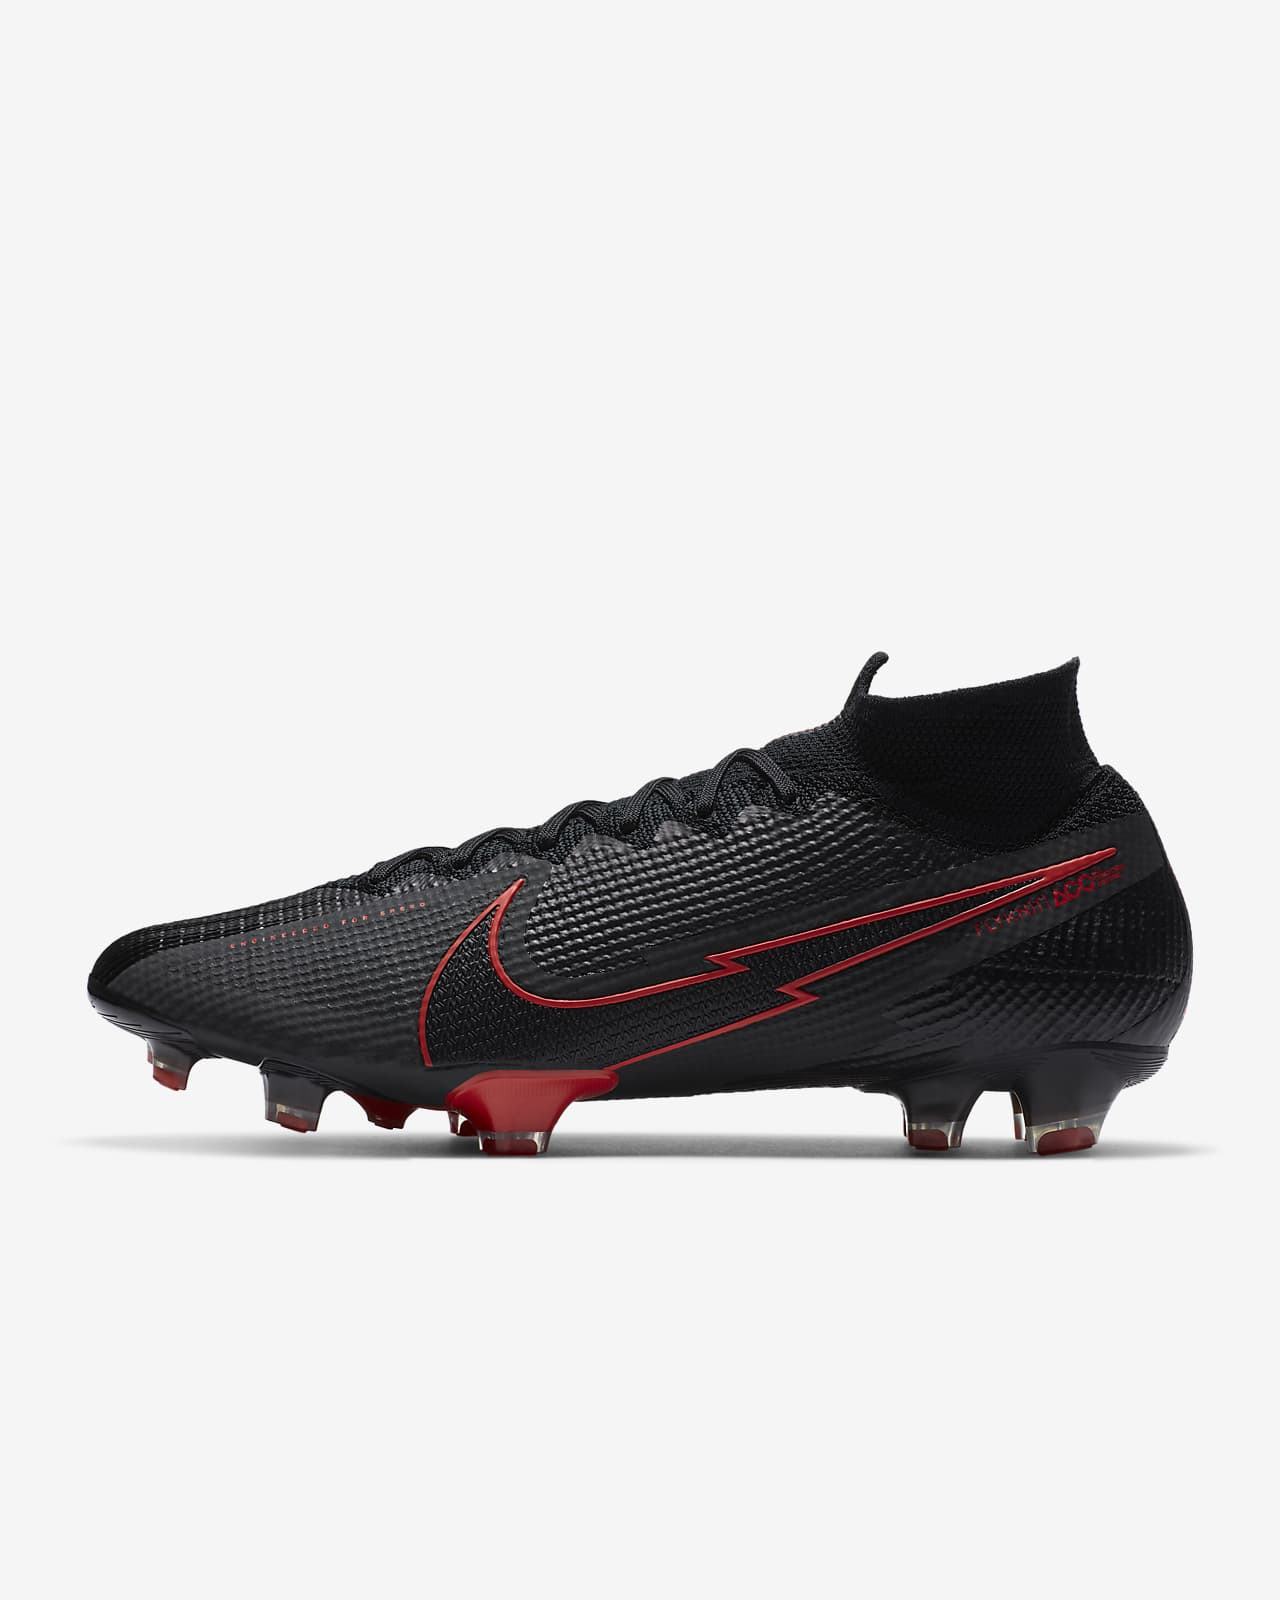 Nike Mercurial Superfly 7 Elite FG Firm-Ground Soccer Cleat